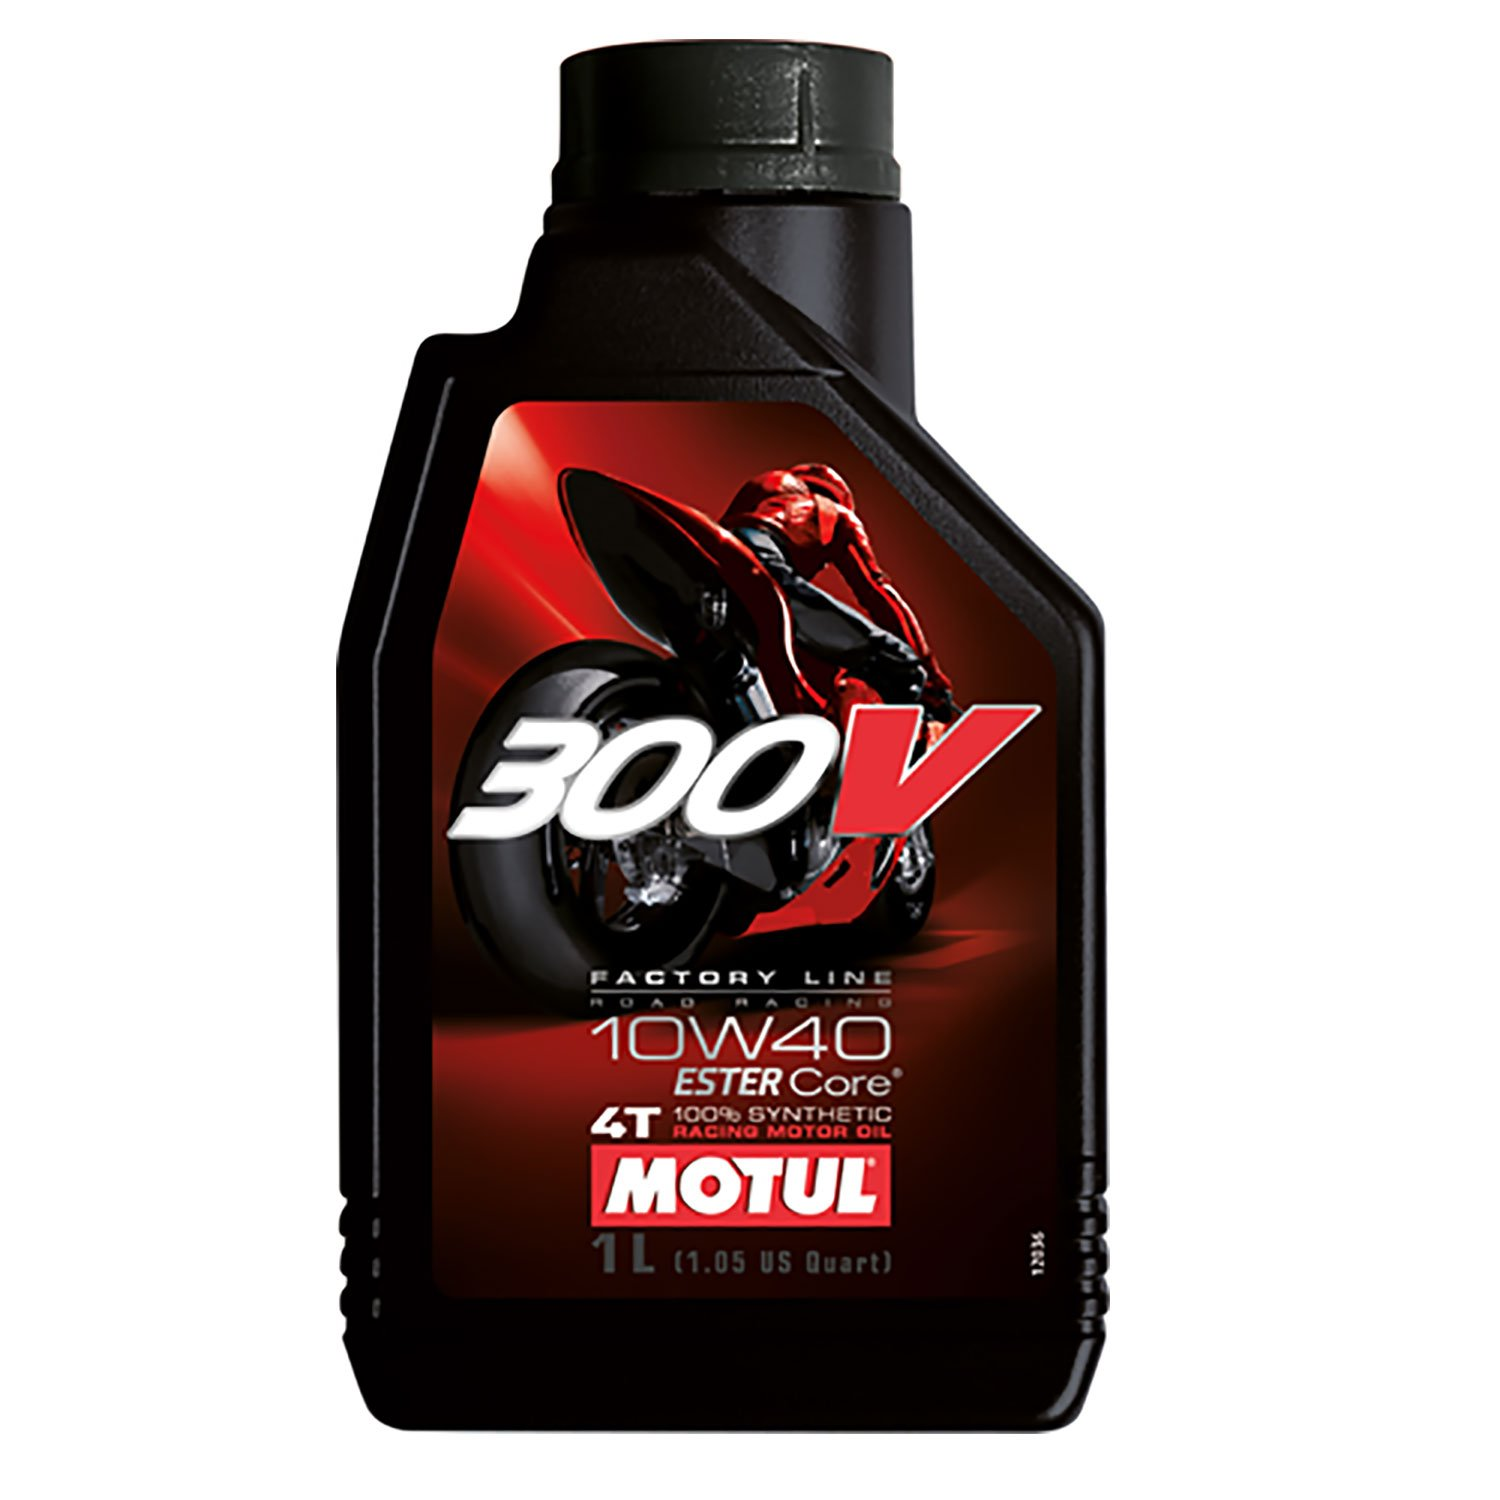 Motul 300V Factory Line Ester Core Fully Synthetic 10W-40 Petrol Engine Oil for Bikes (1 L) product image